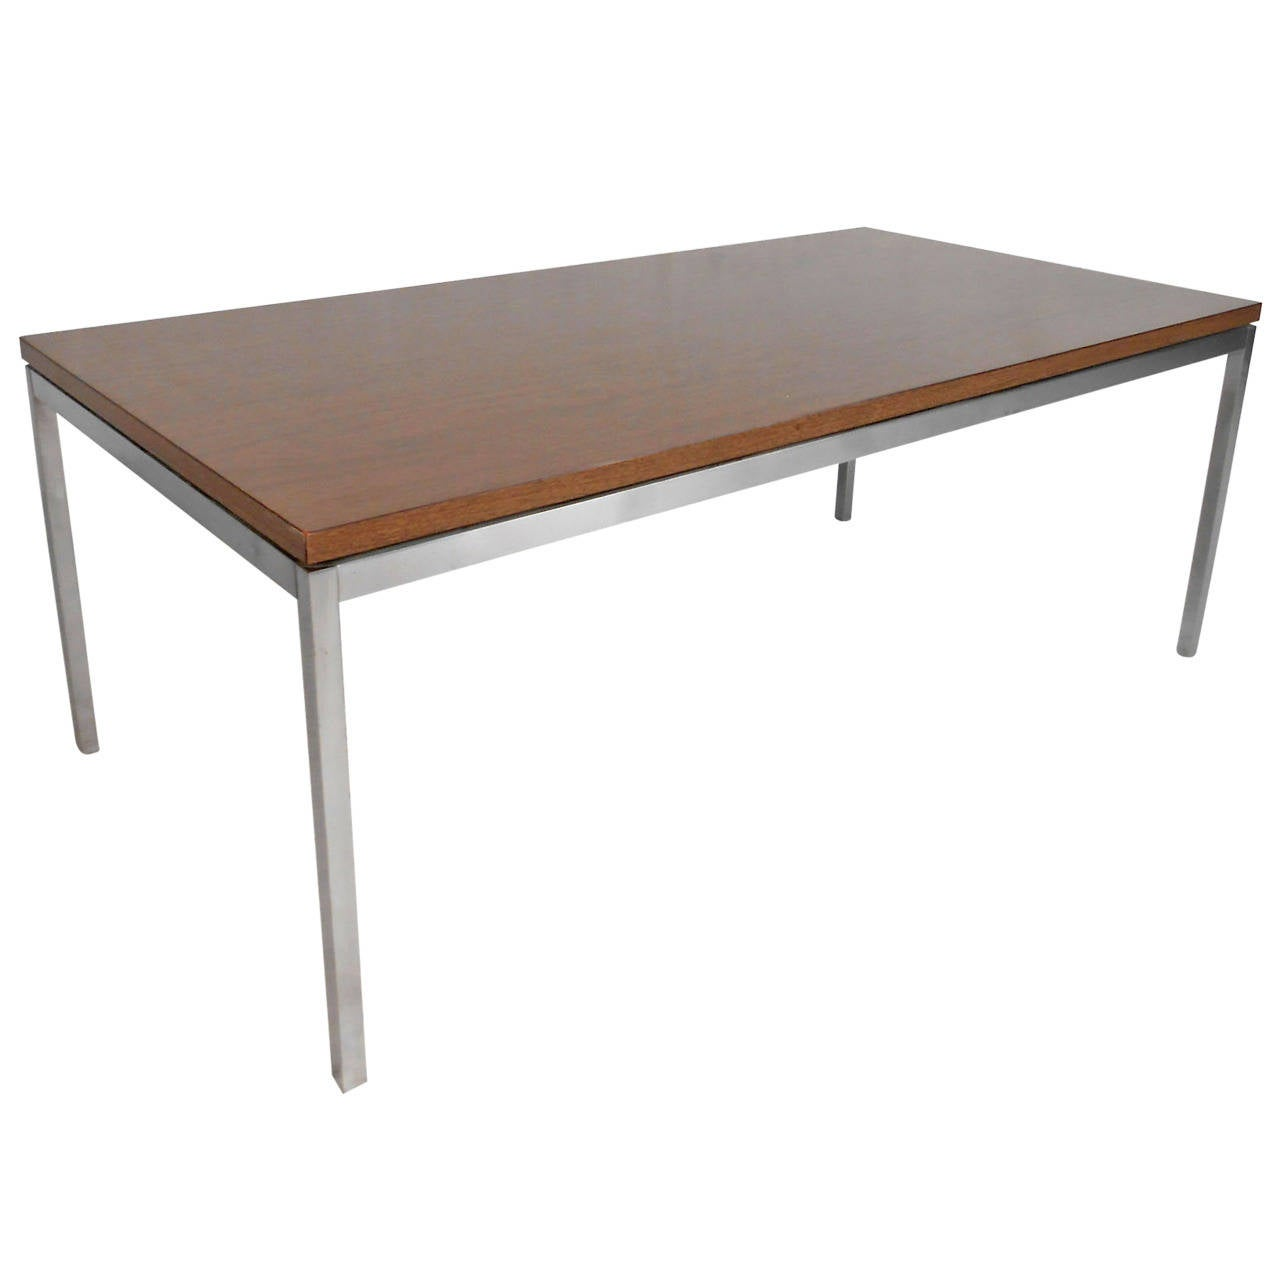 Mid century modern florence knoll coffee table for sale at for Modern coffee table sale